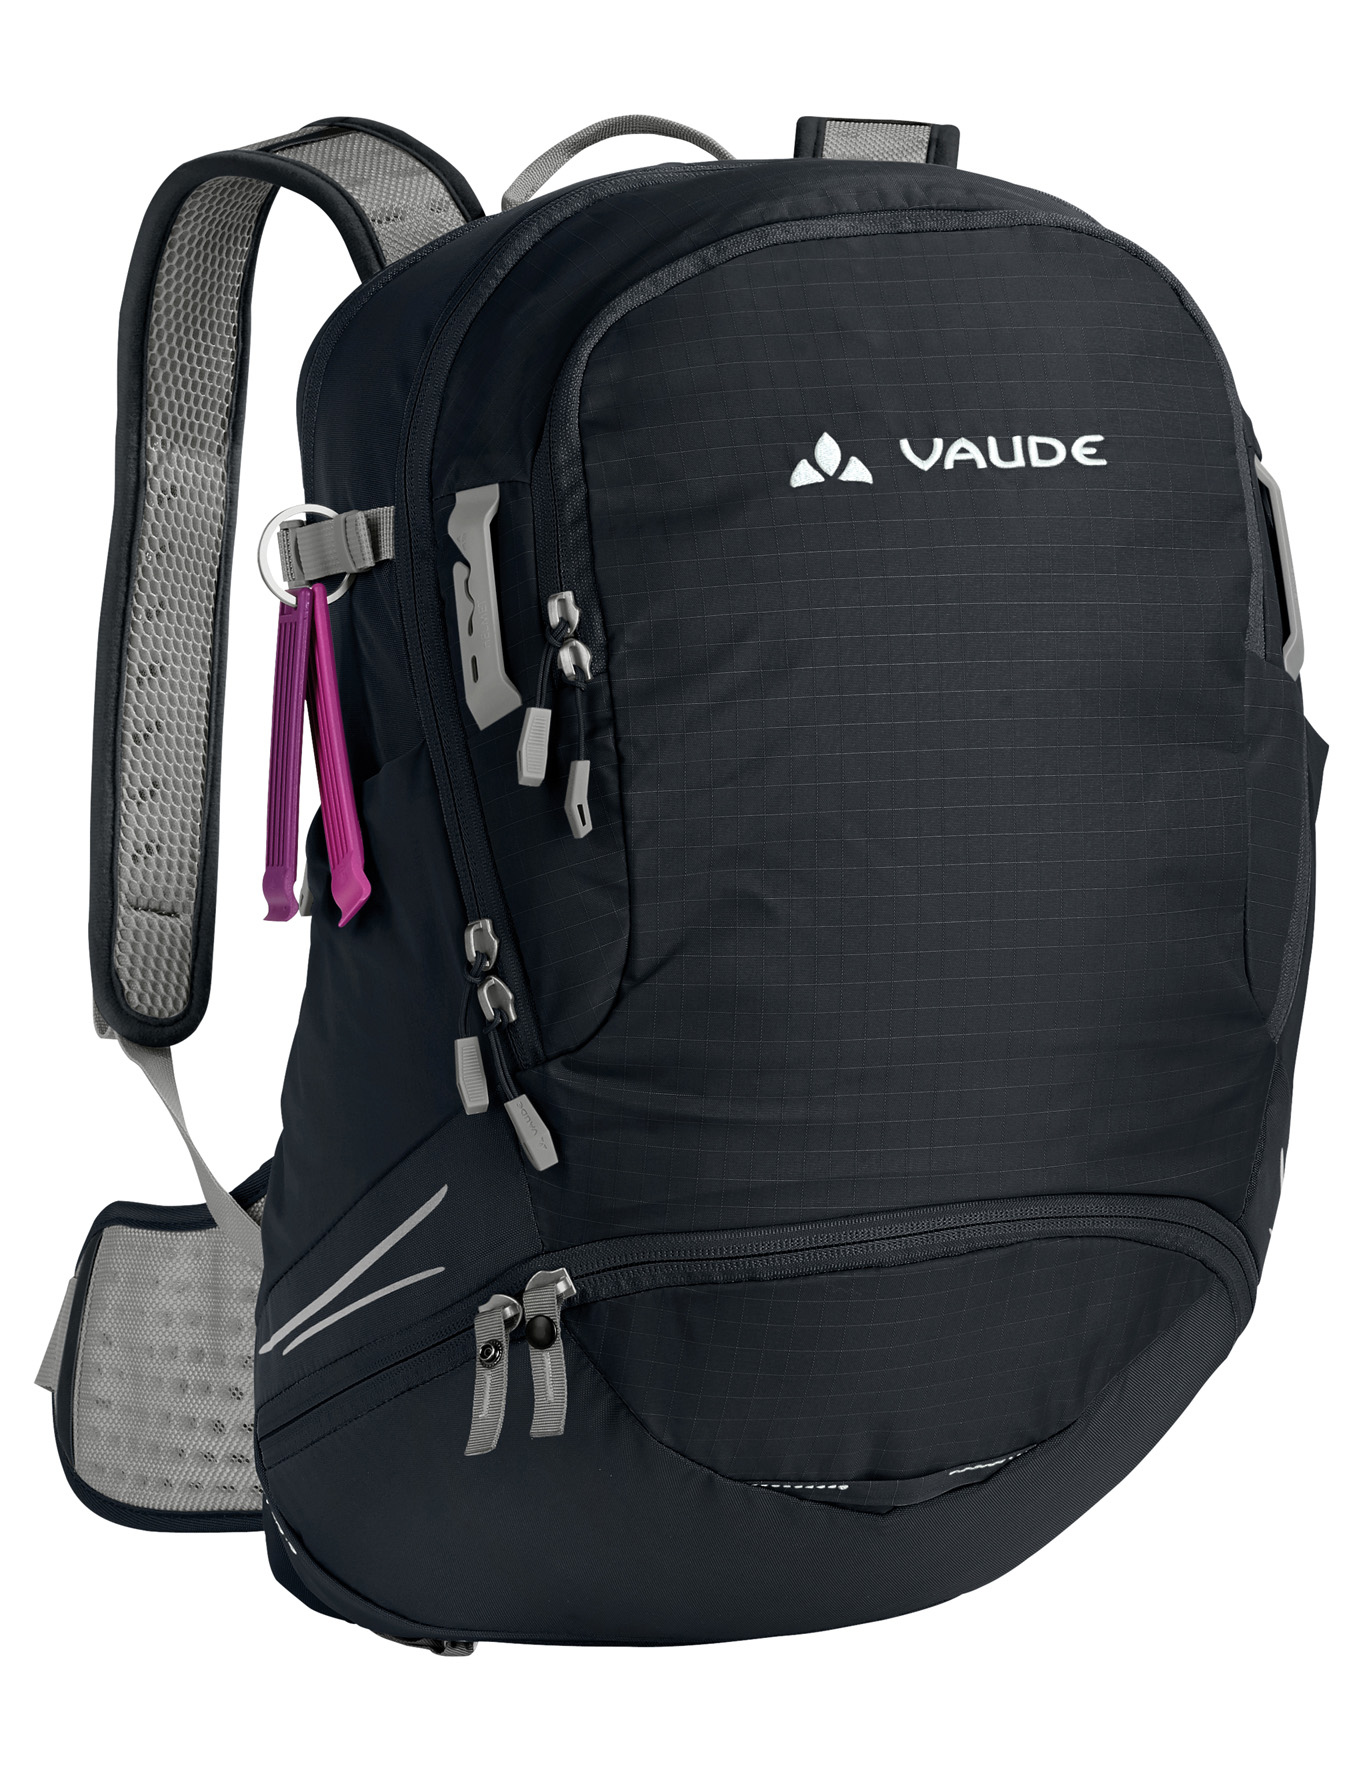 VAUDE Roomy 23+3 black  - schneider-sports